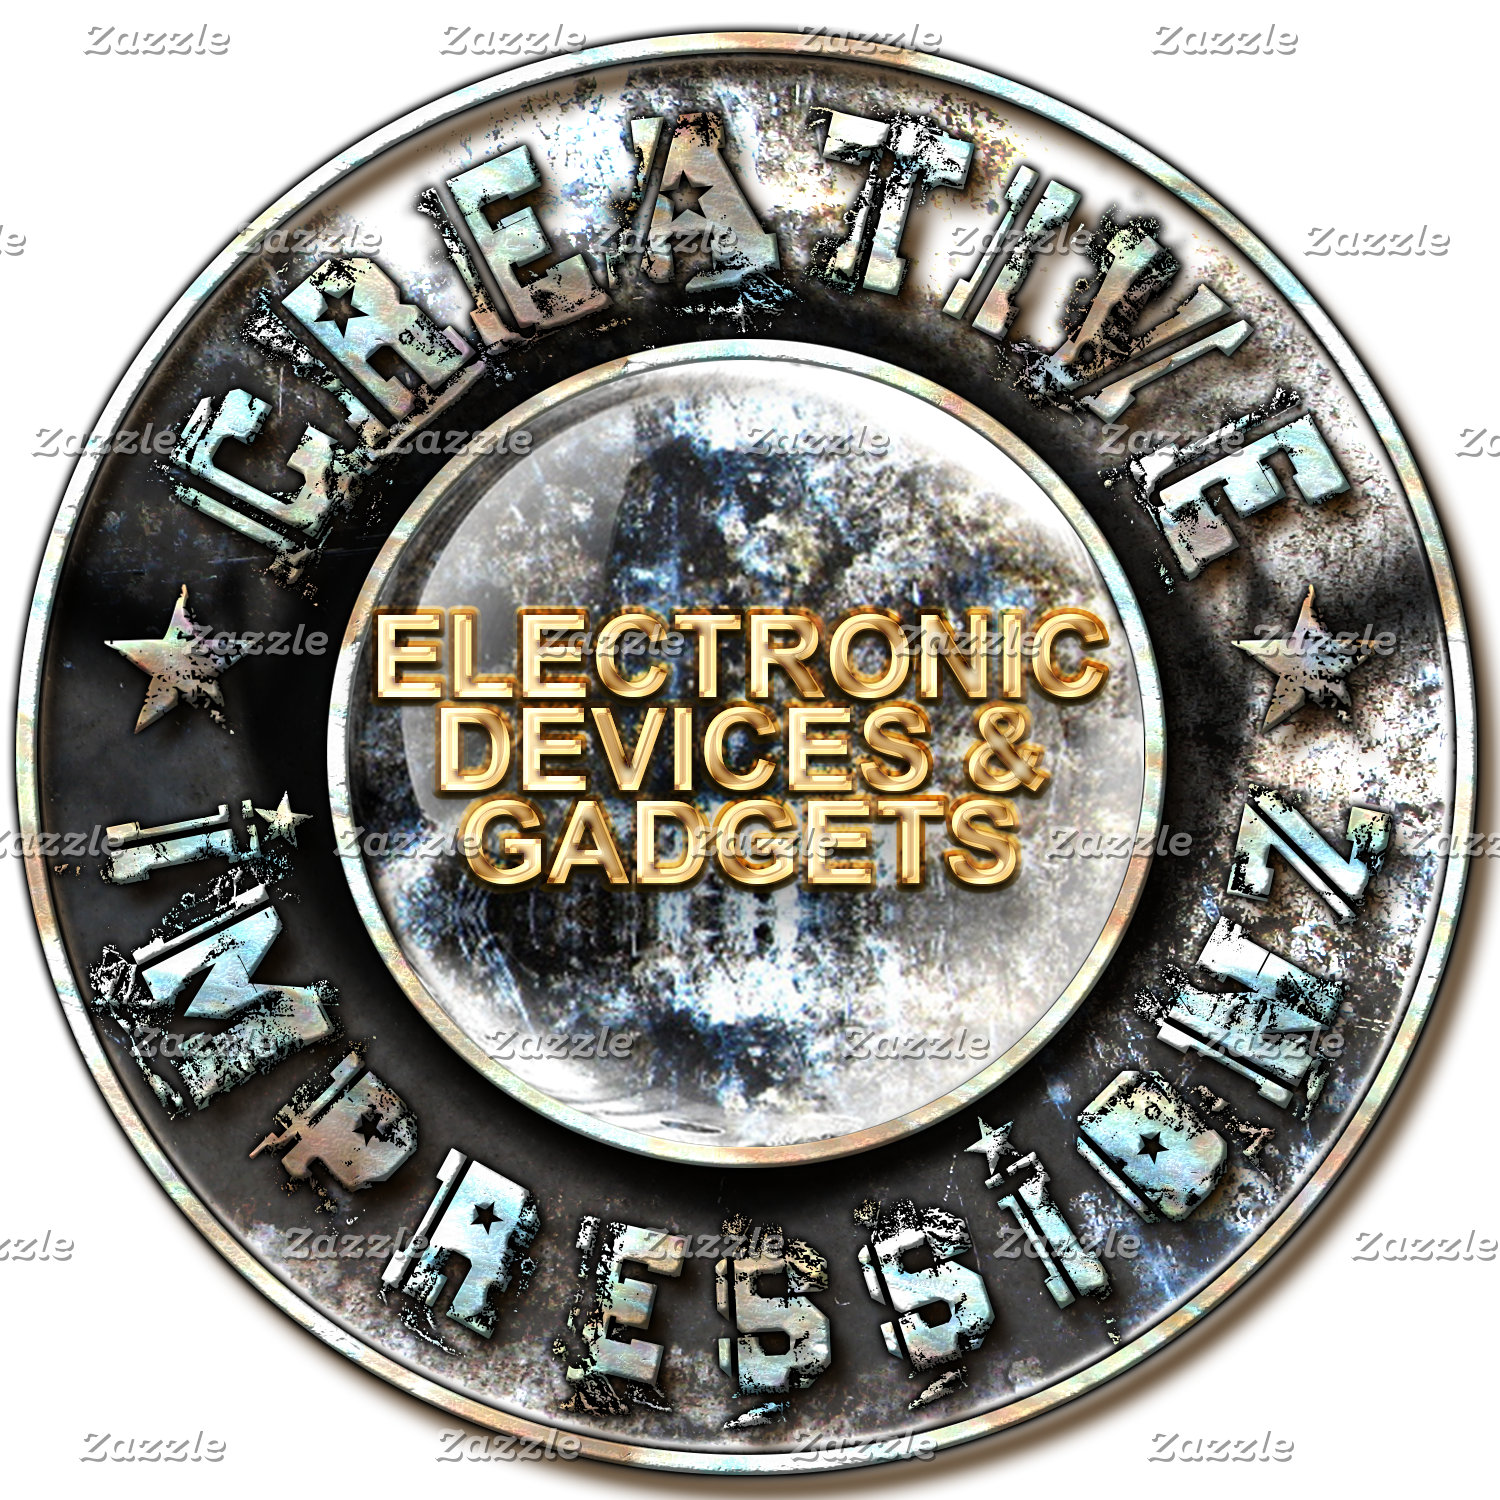 ELECTRONIC DEVICES & GADGETS